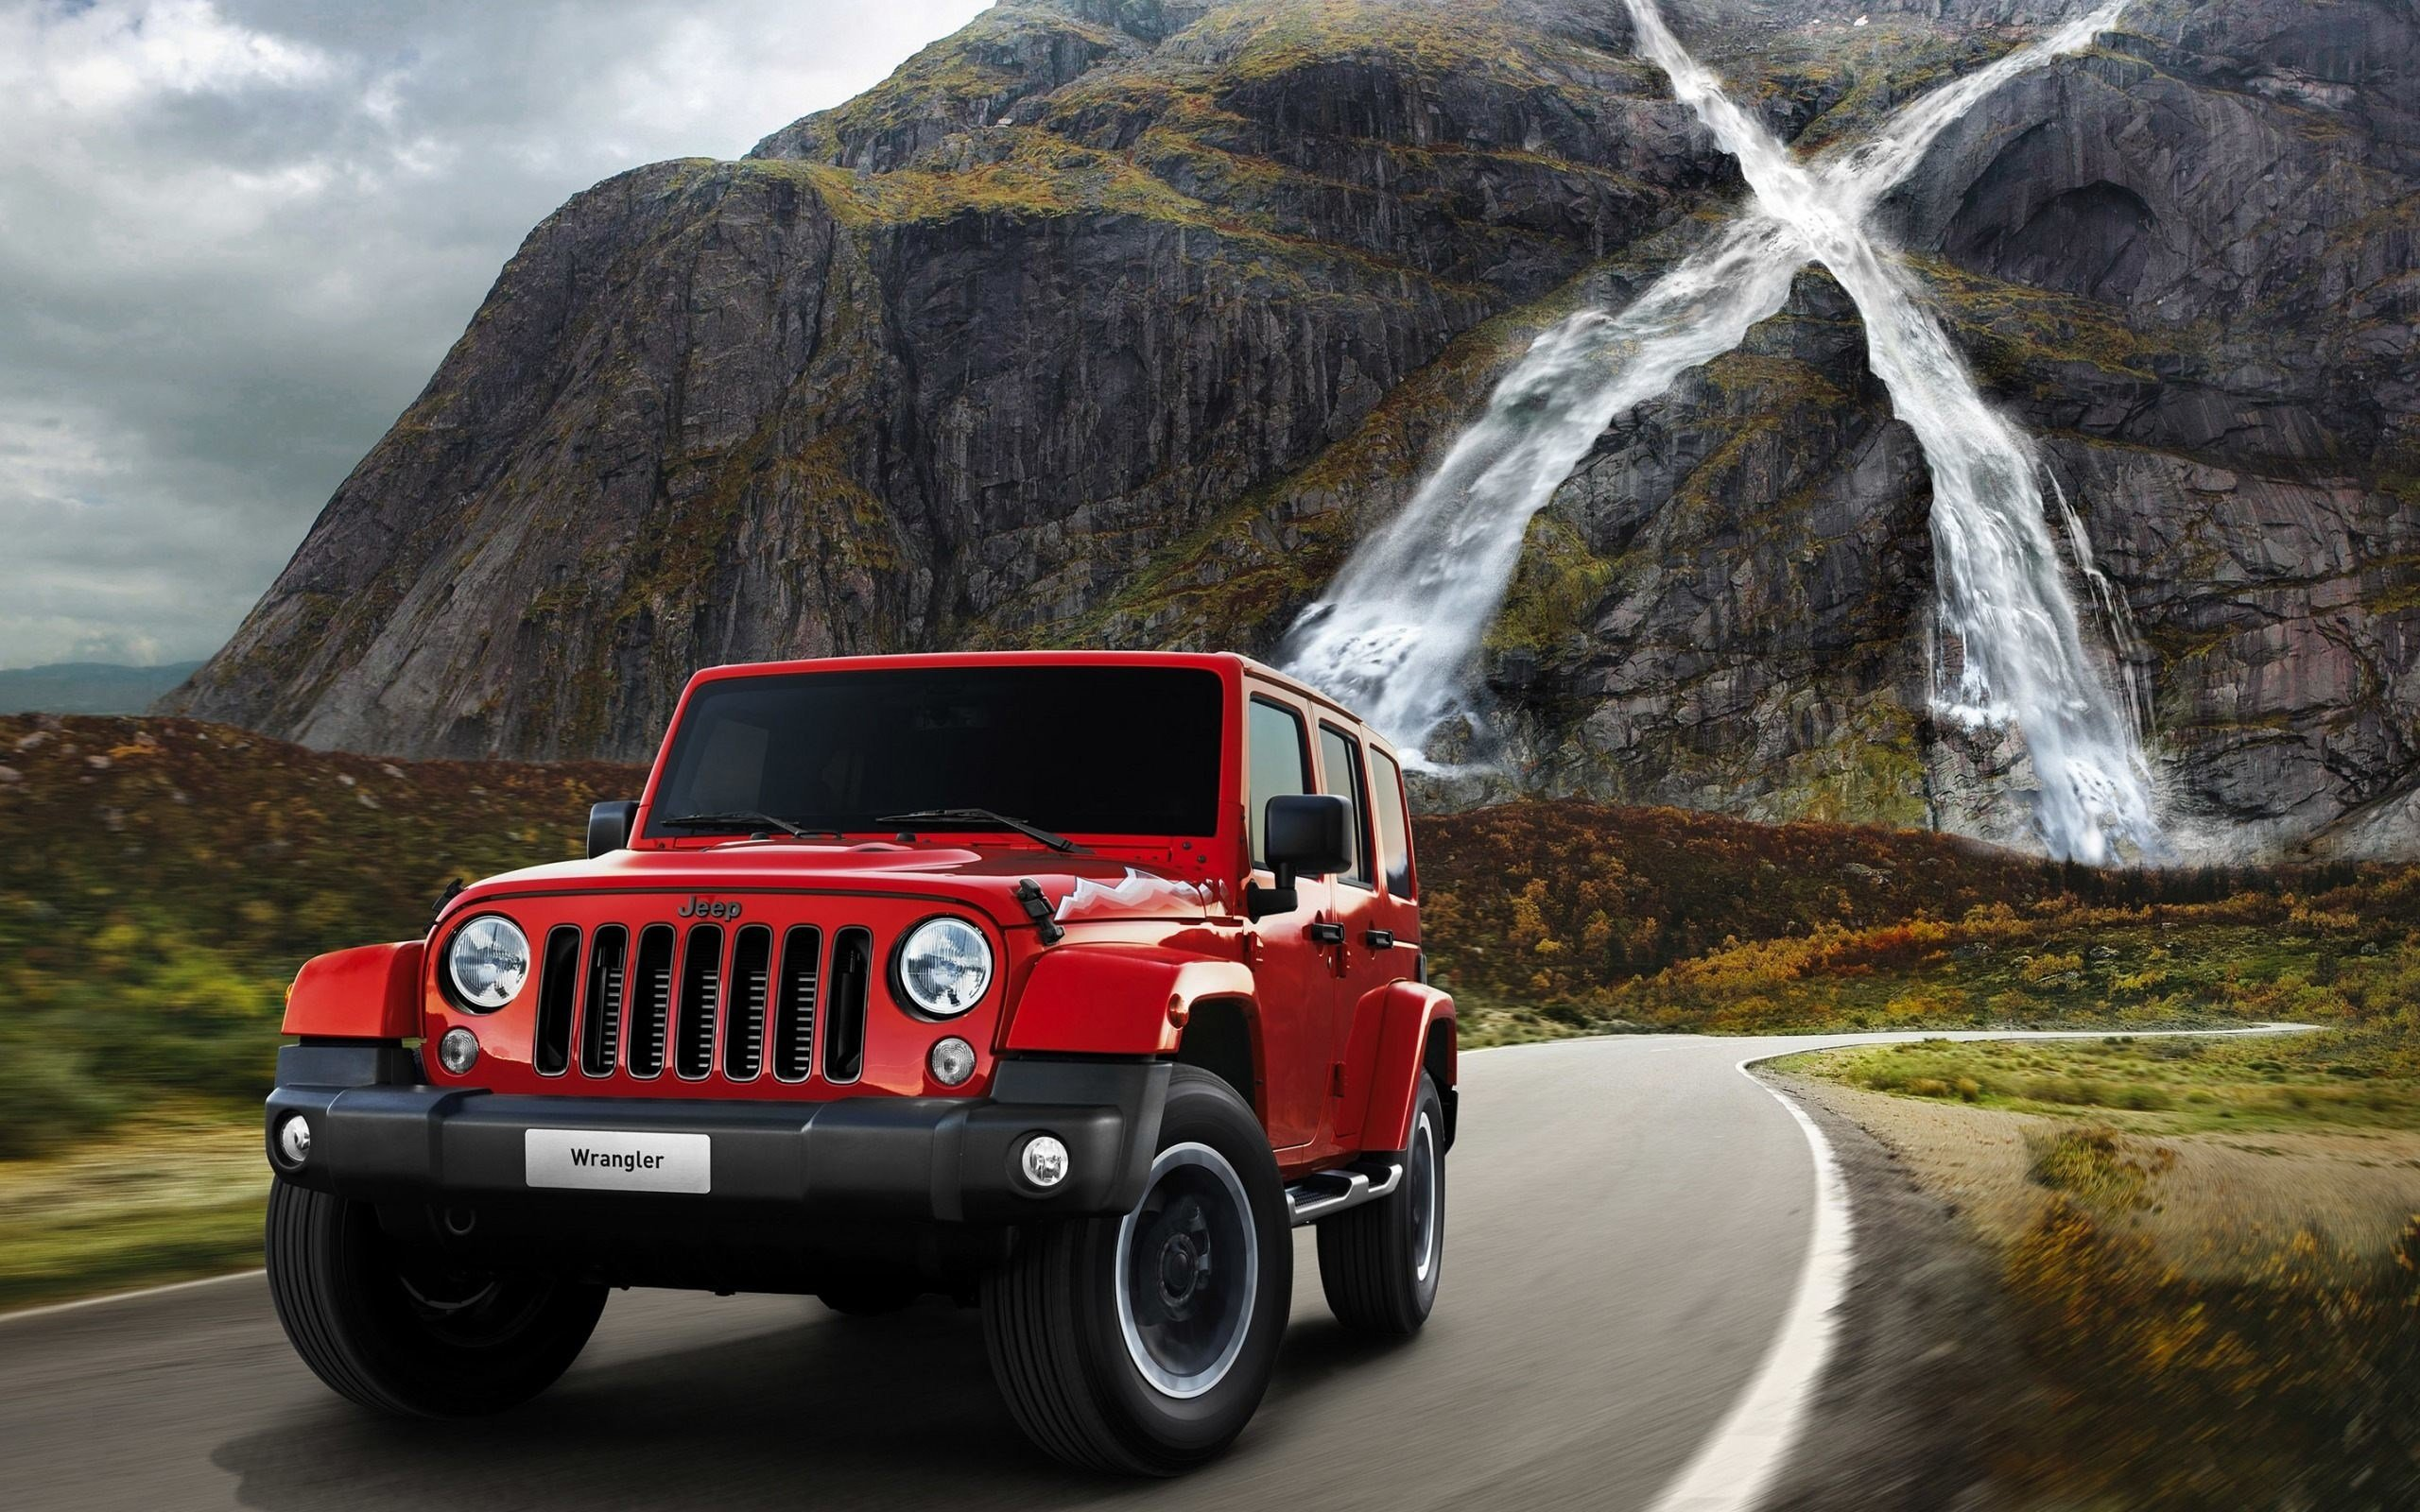 Latest Jeep Wrangler Wallpaper Hd 63 Images Free Download